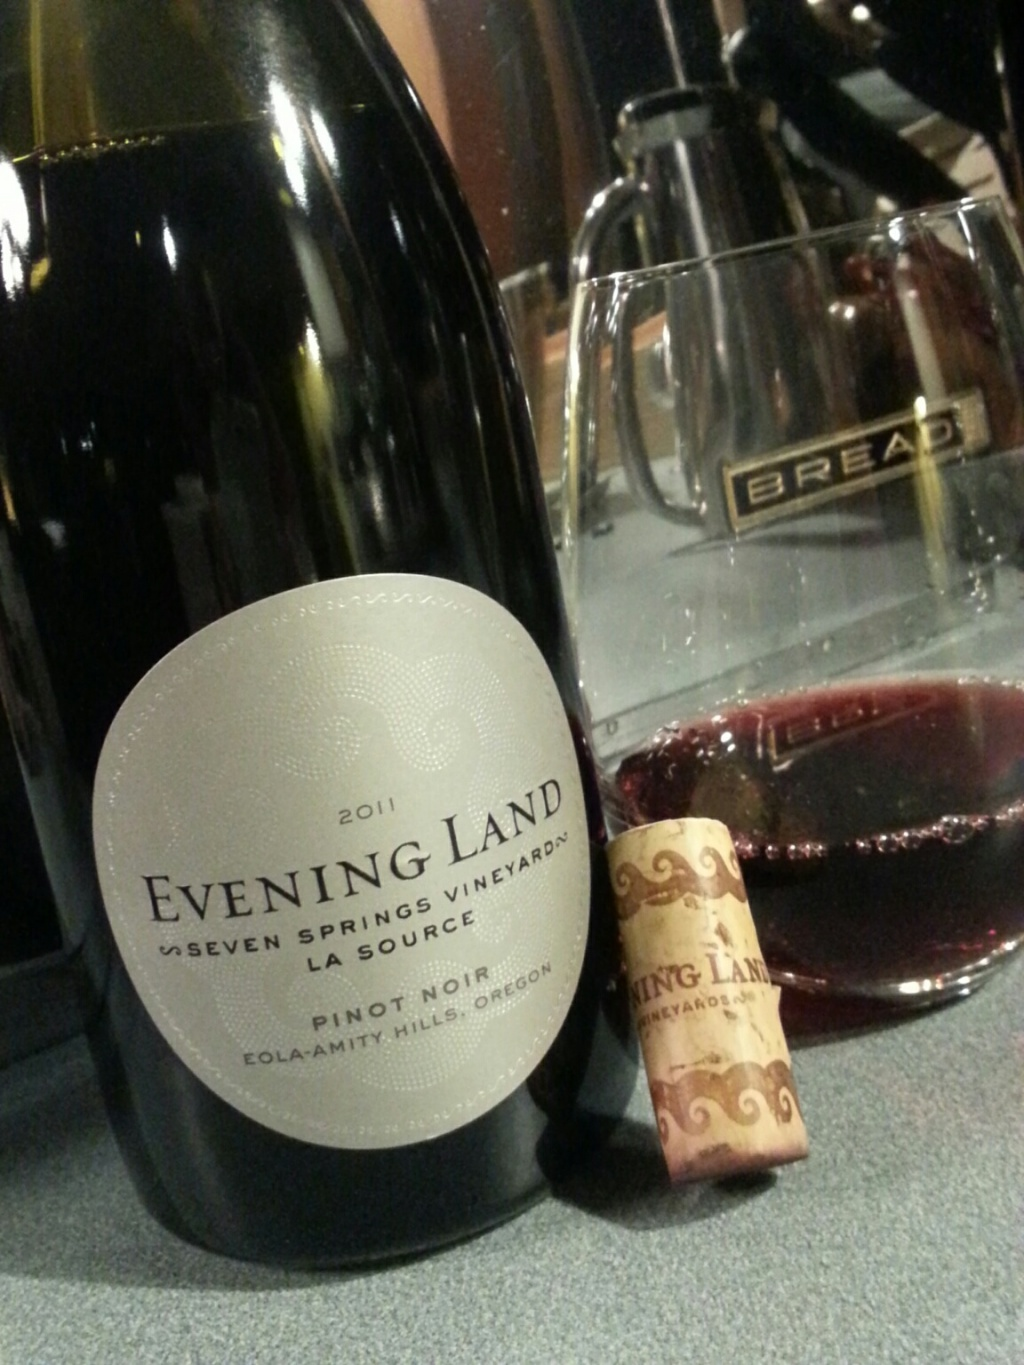 Evening Land Seven Springs Pinot Noir, 2011